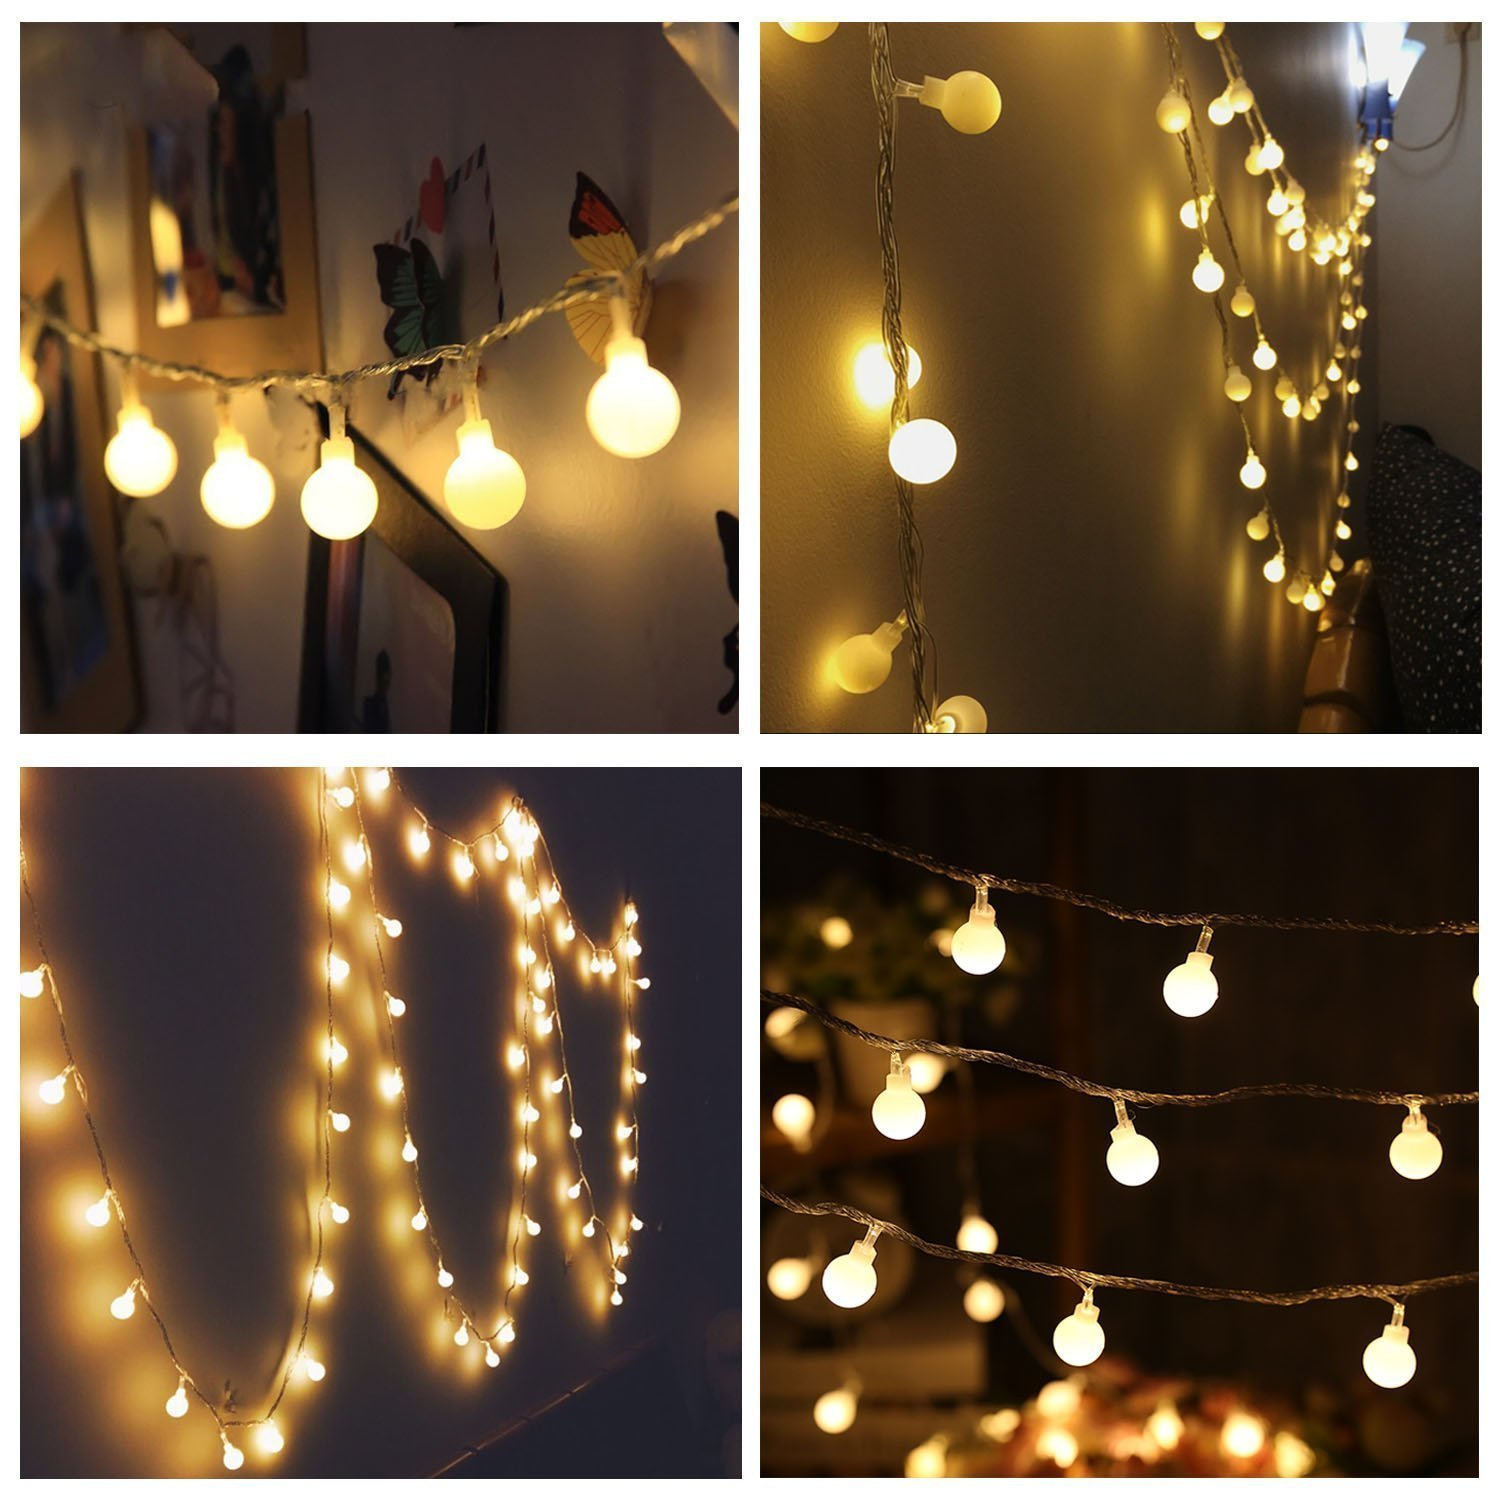 Light weight warm small globe lights simple yet elegant